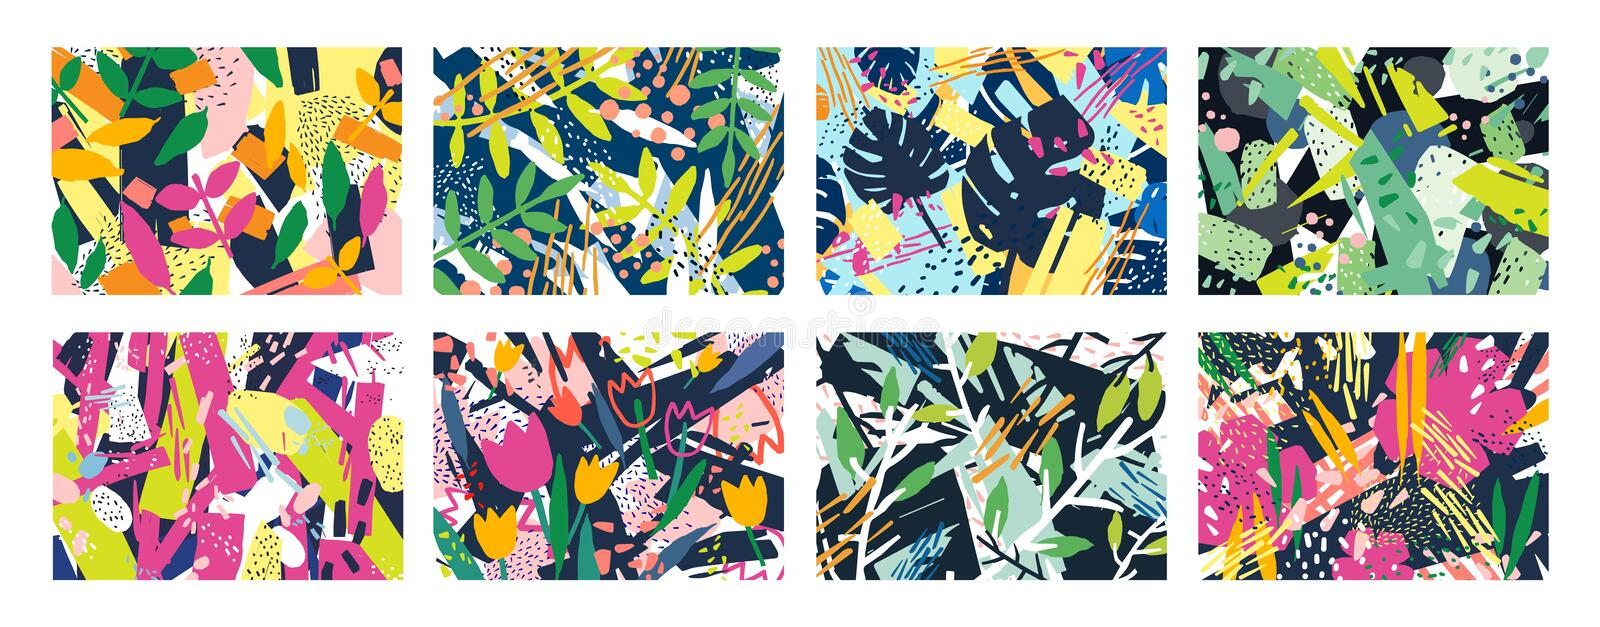 Collection of creative abstract horizontal backgrounds or backdrops with tree branches, leaves, colorful stains and vector illustration